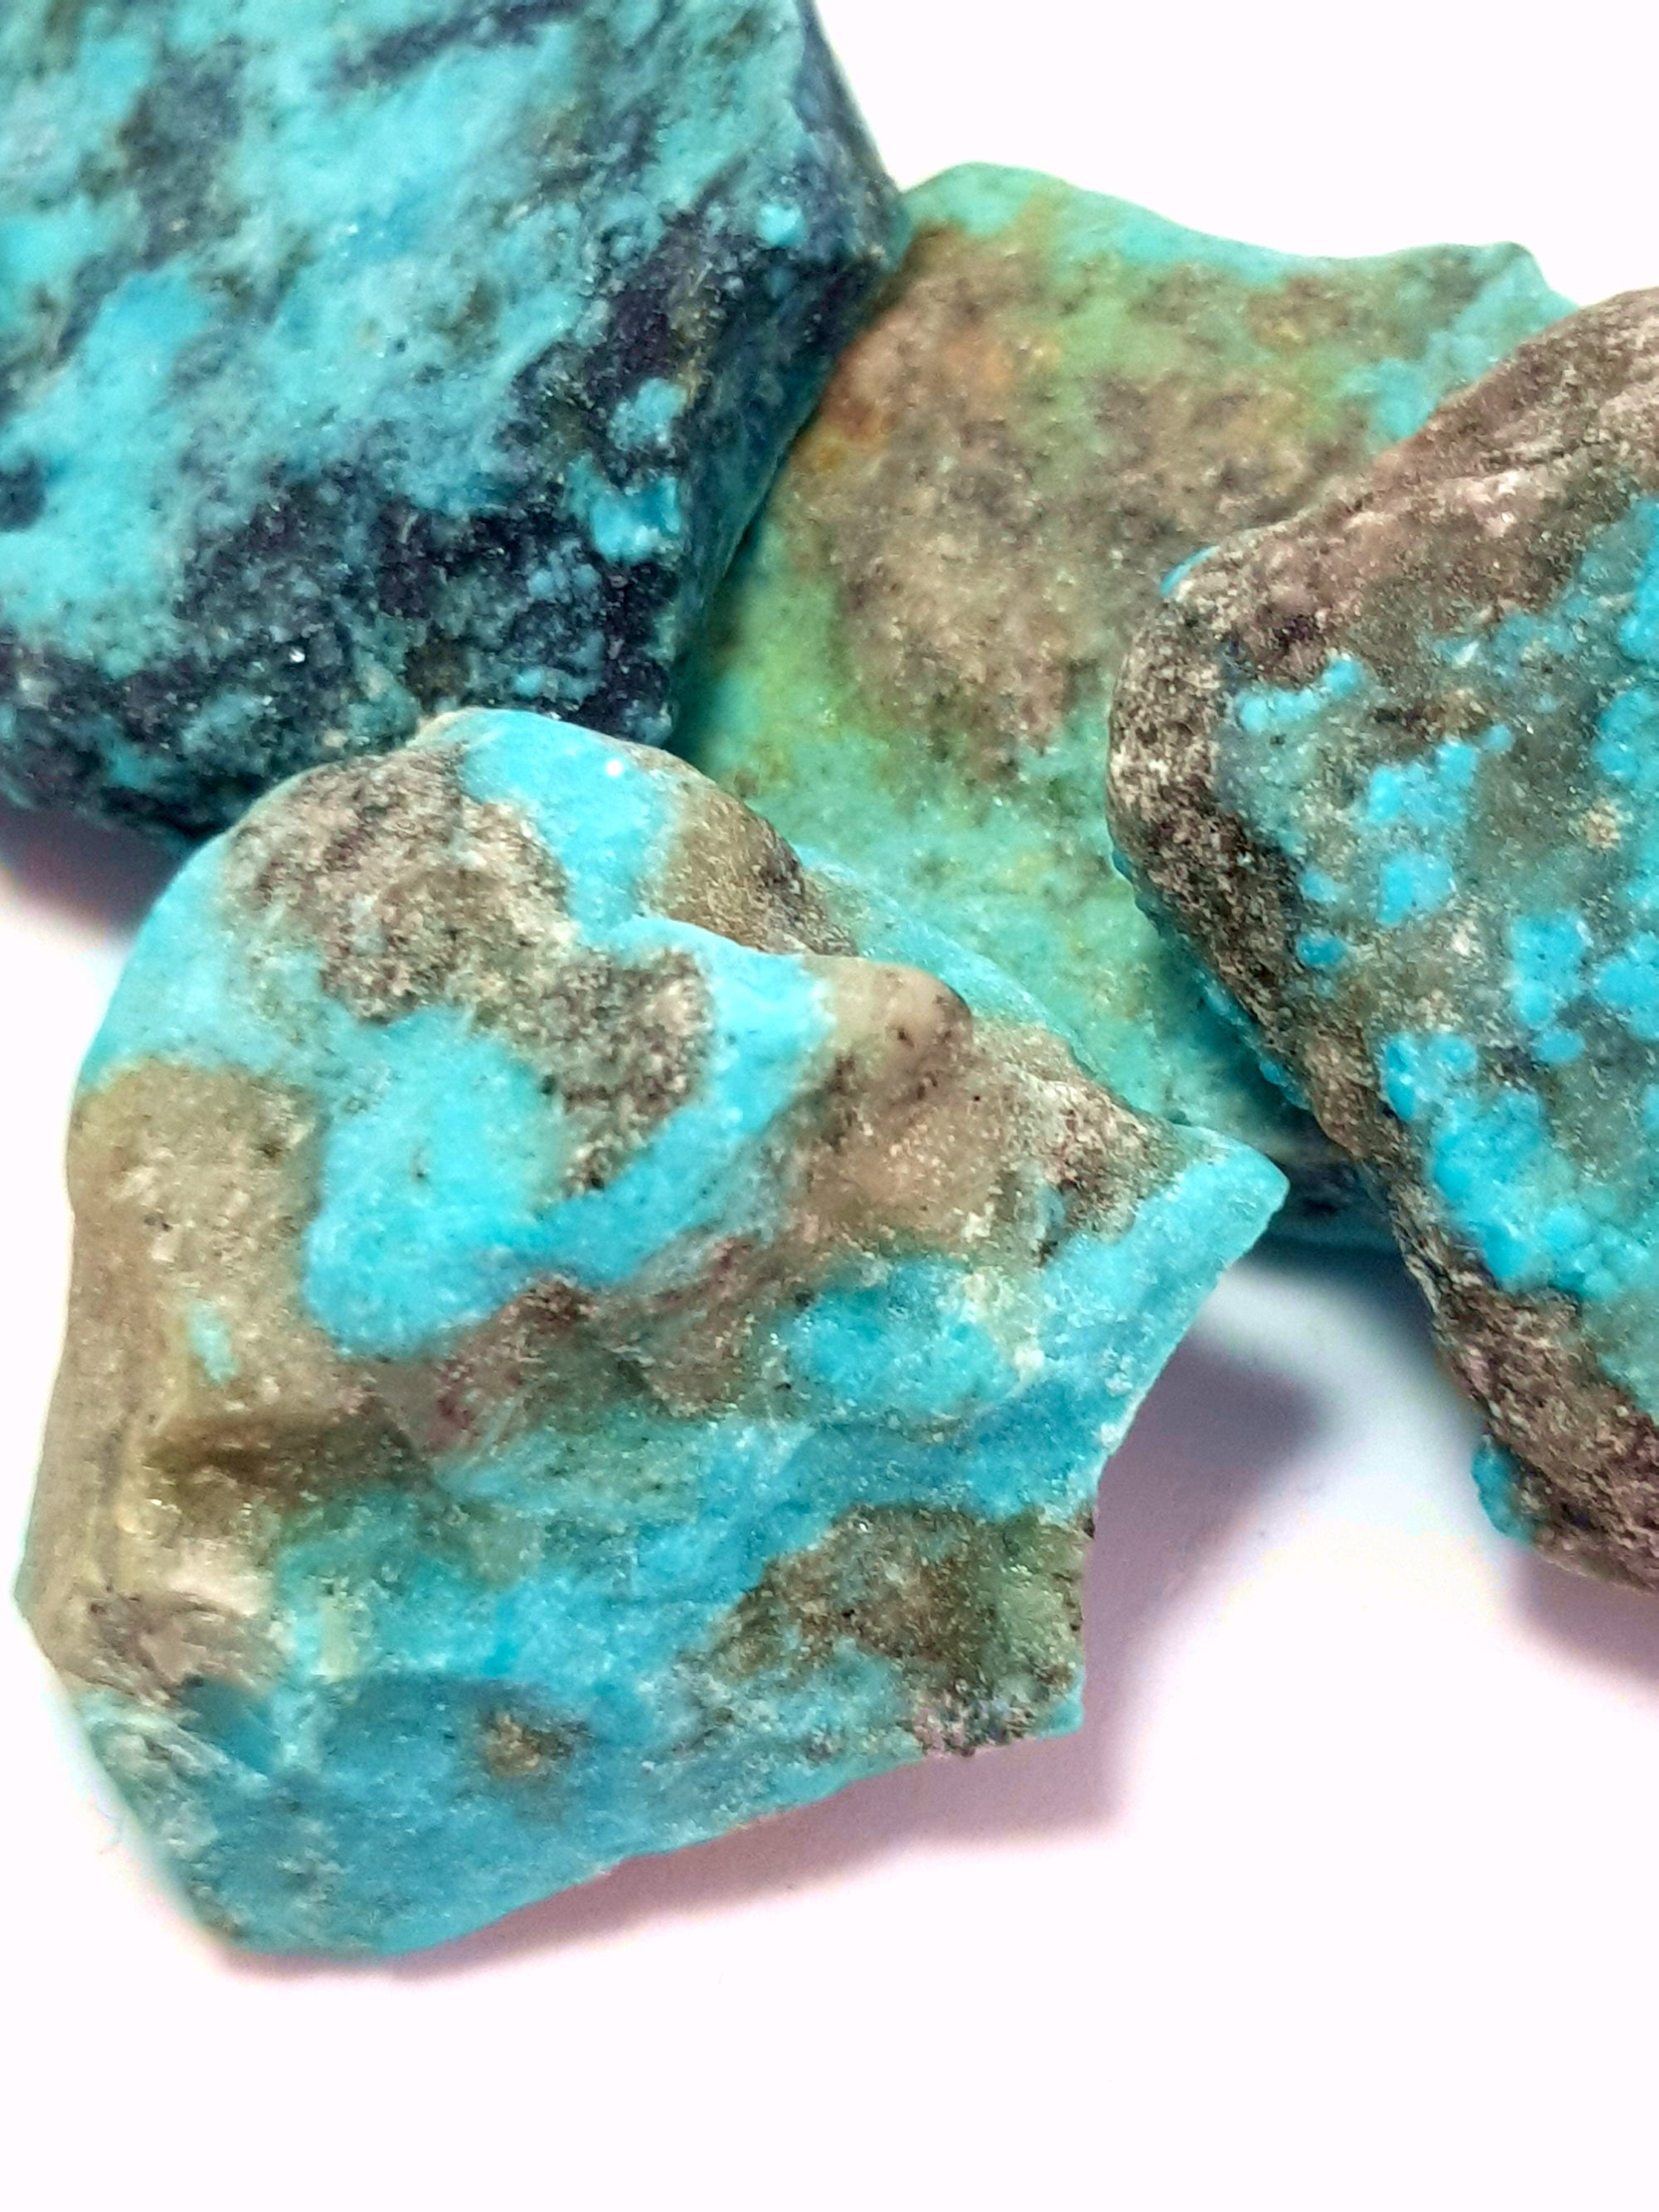 raw samples of kingman turquoise. The turquoise has a strong blue tint to it